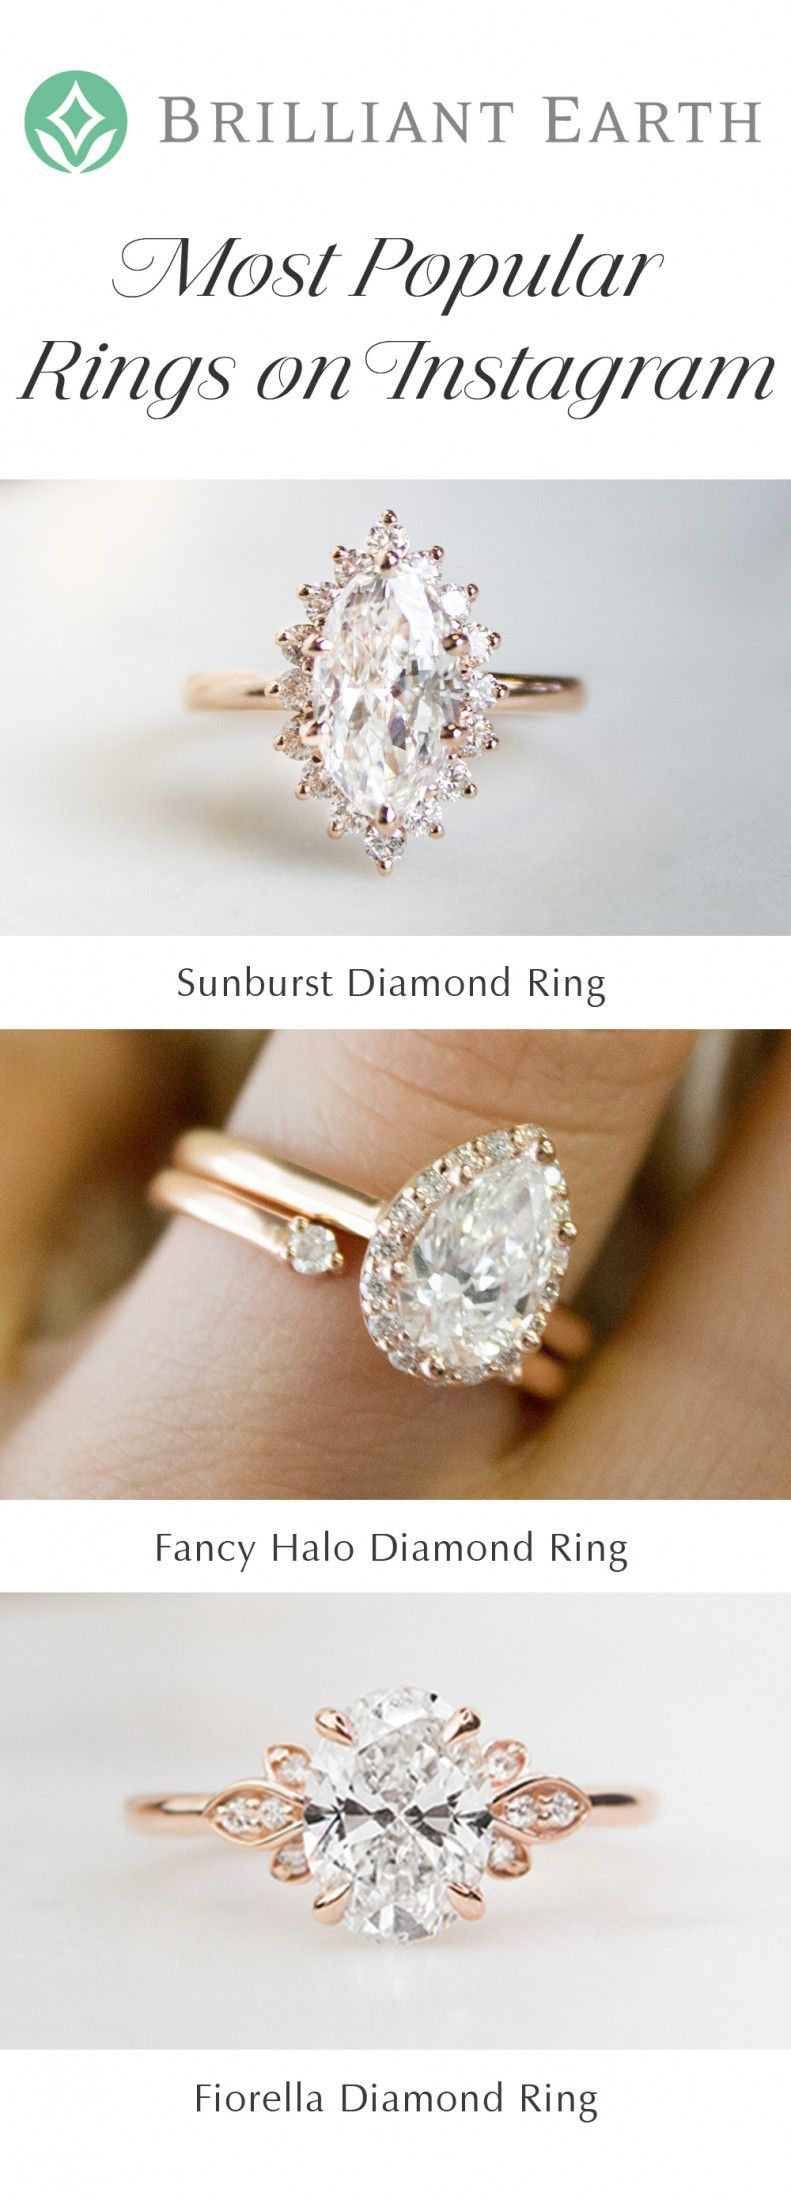 [ad] Explore our collection of unique engagement rings.